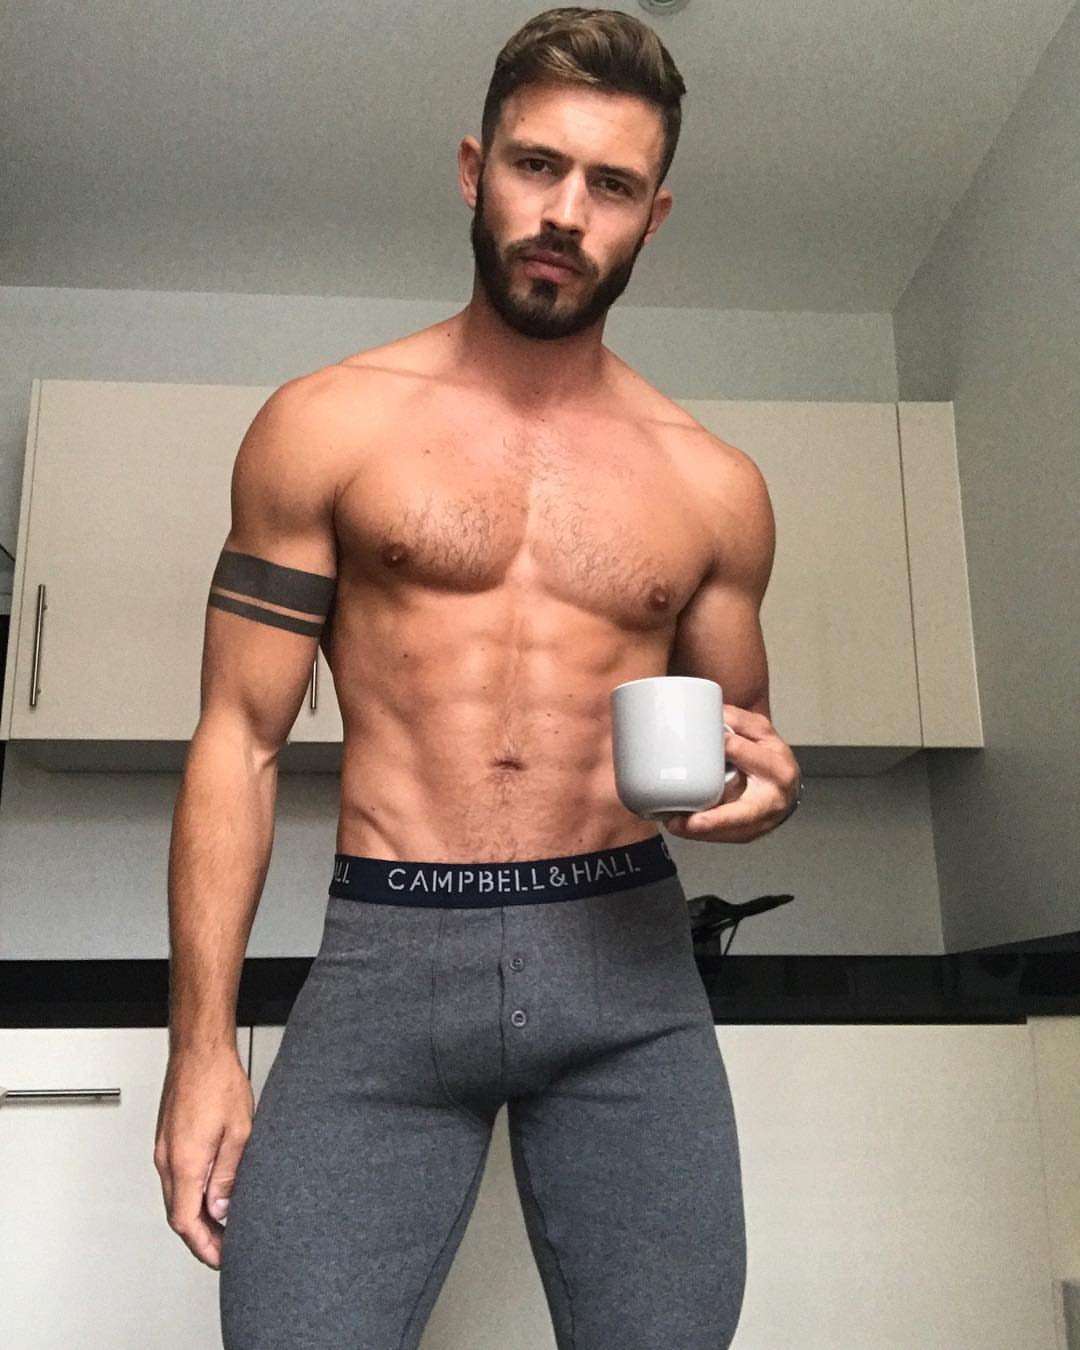 Shirtless Men On The Blog: Oliver Parny Mostra Il Sedere